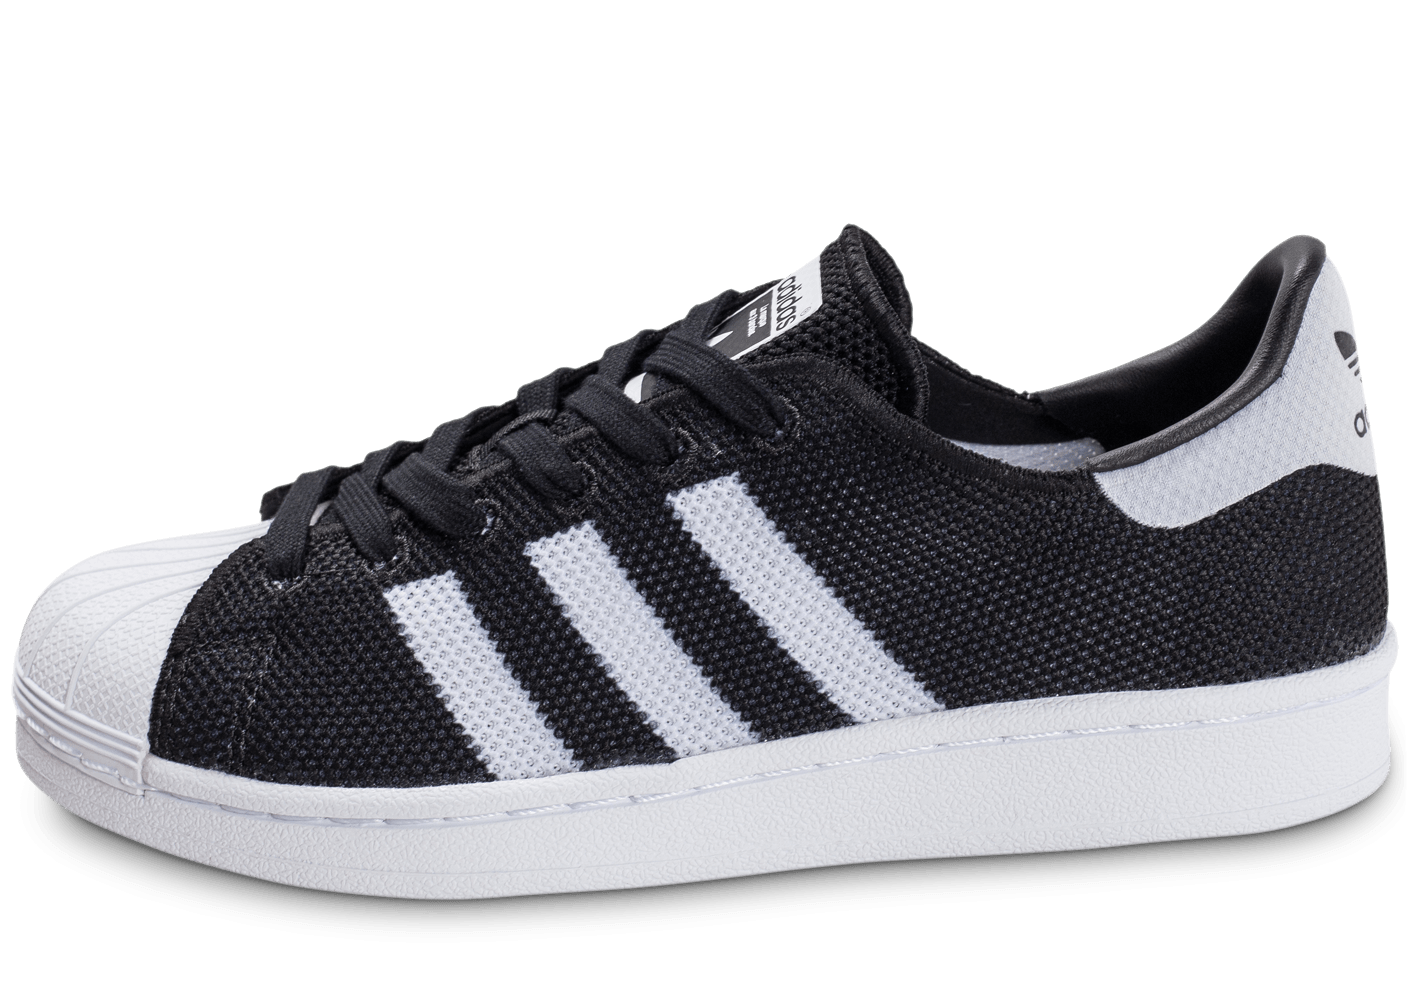 adidas superstar mesh junior noire et blanche chaussures adidas chausport. Black Bedroom Furniture Sets. Home Design Ideas